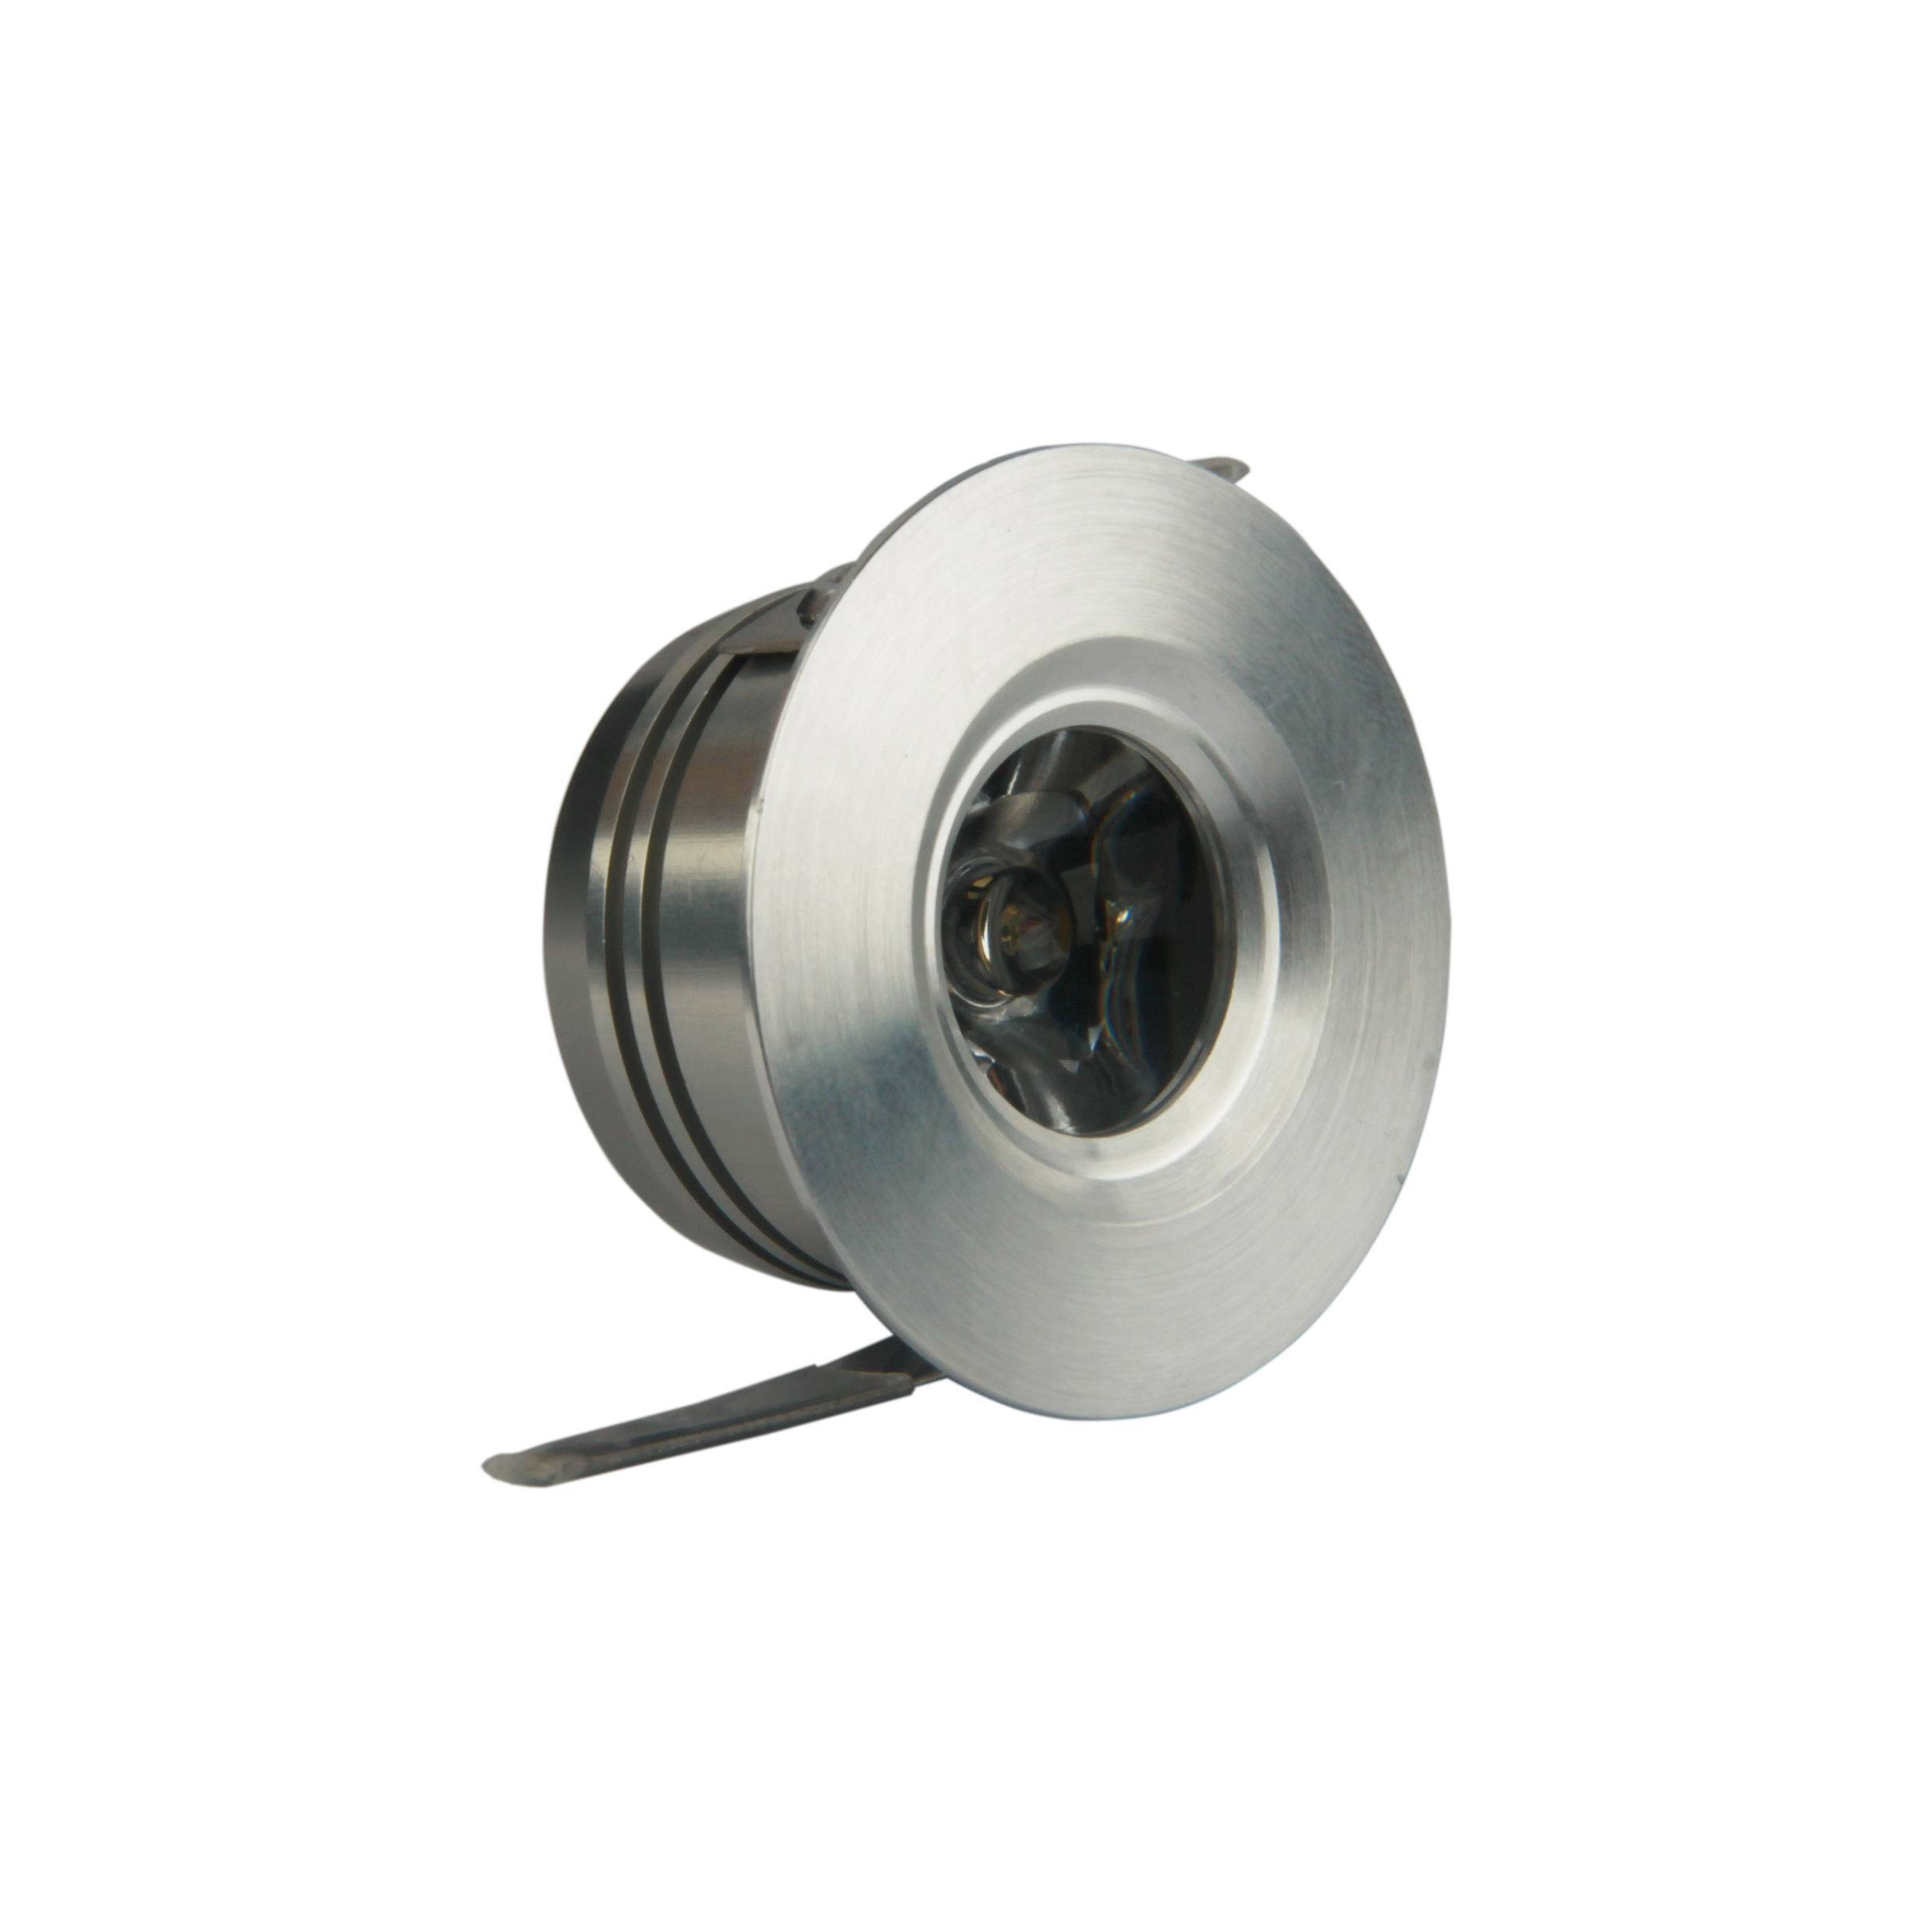 Cabinet-LED-Mini-Spot-Light-DC350mA-1W- Stilvolle Led Spot Mit Bewegungsmelder Dekorationen